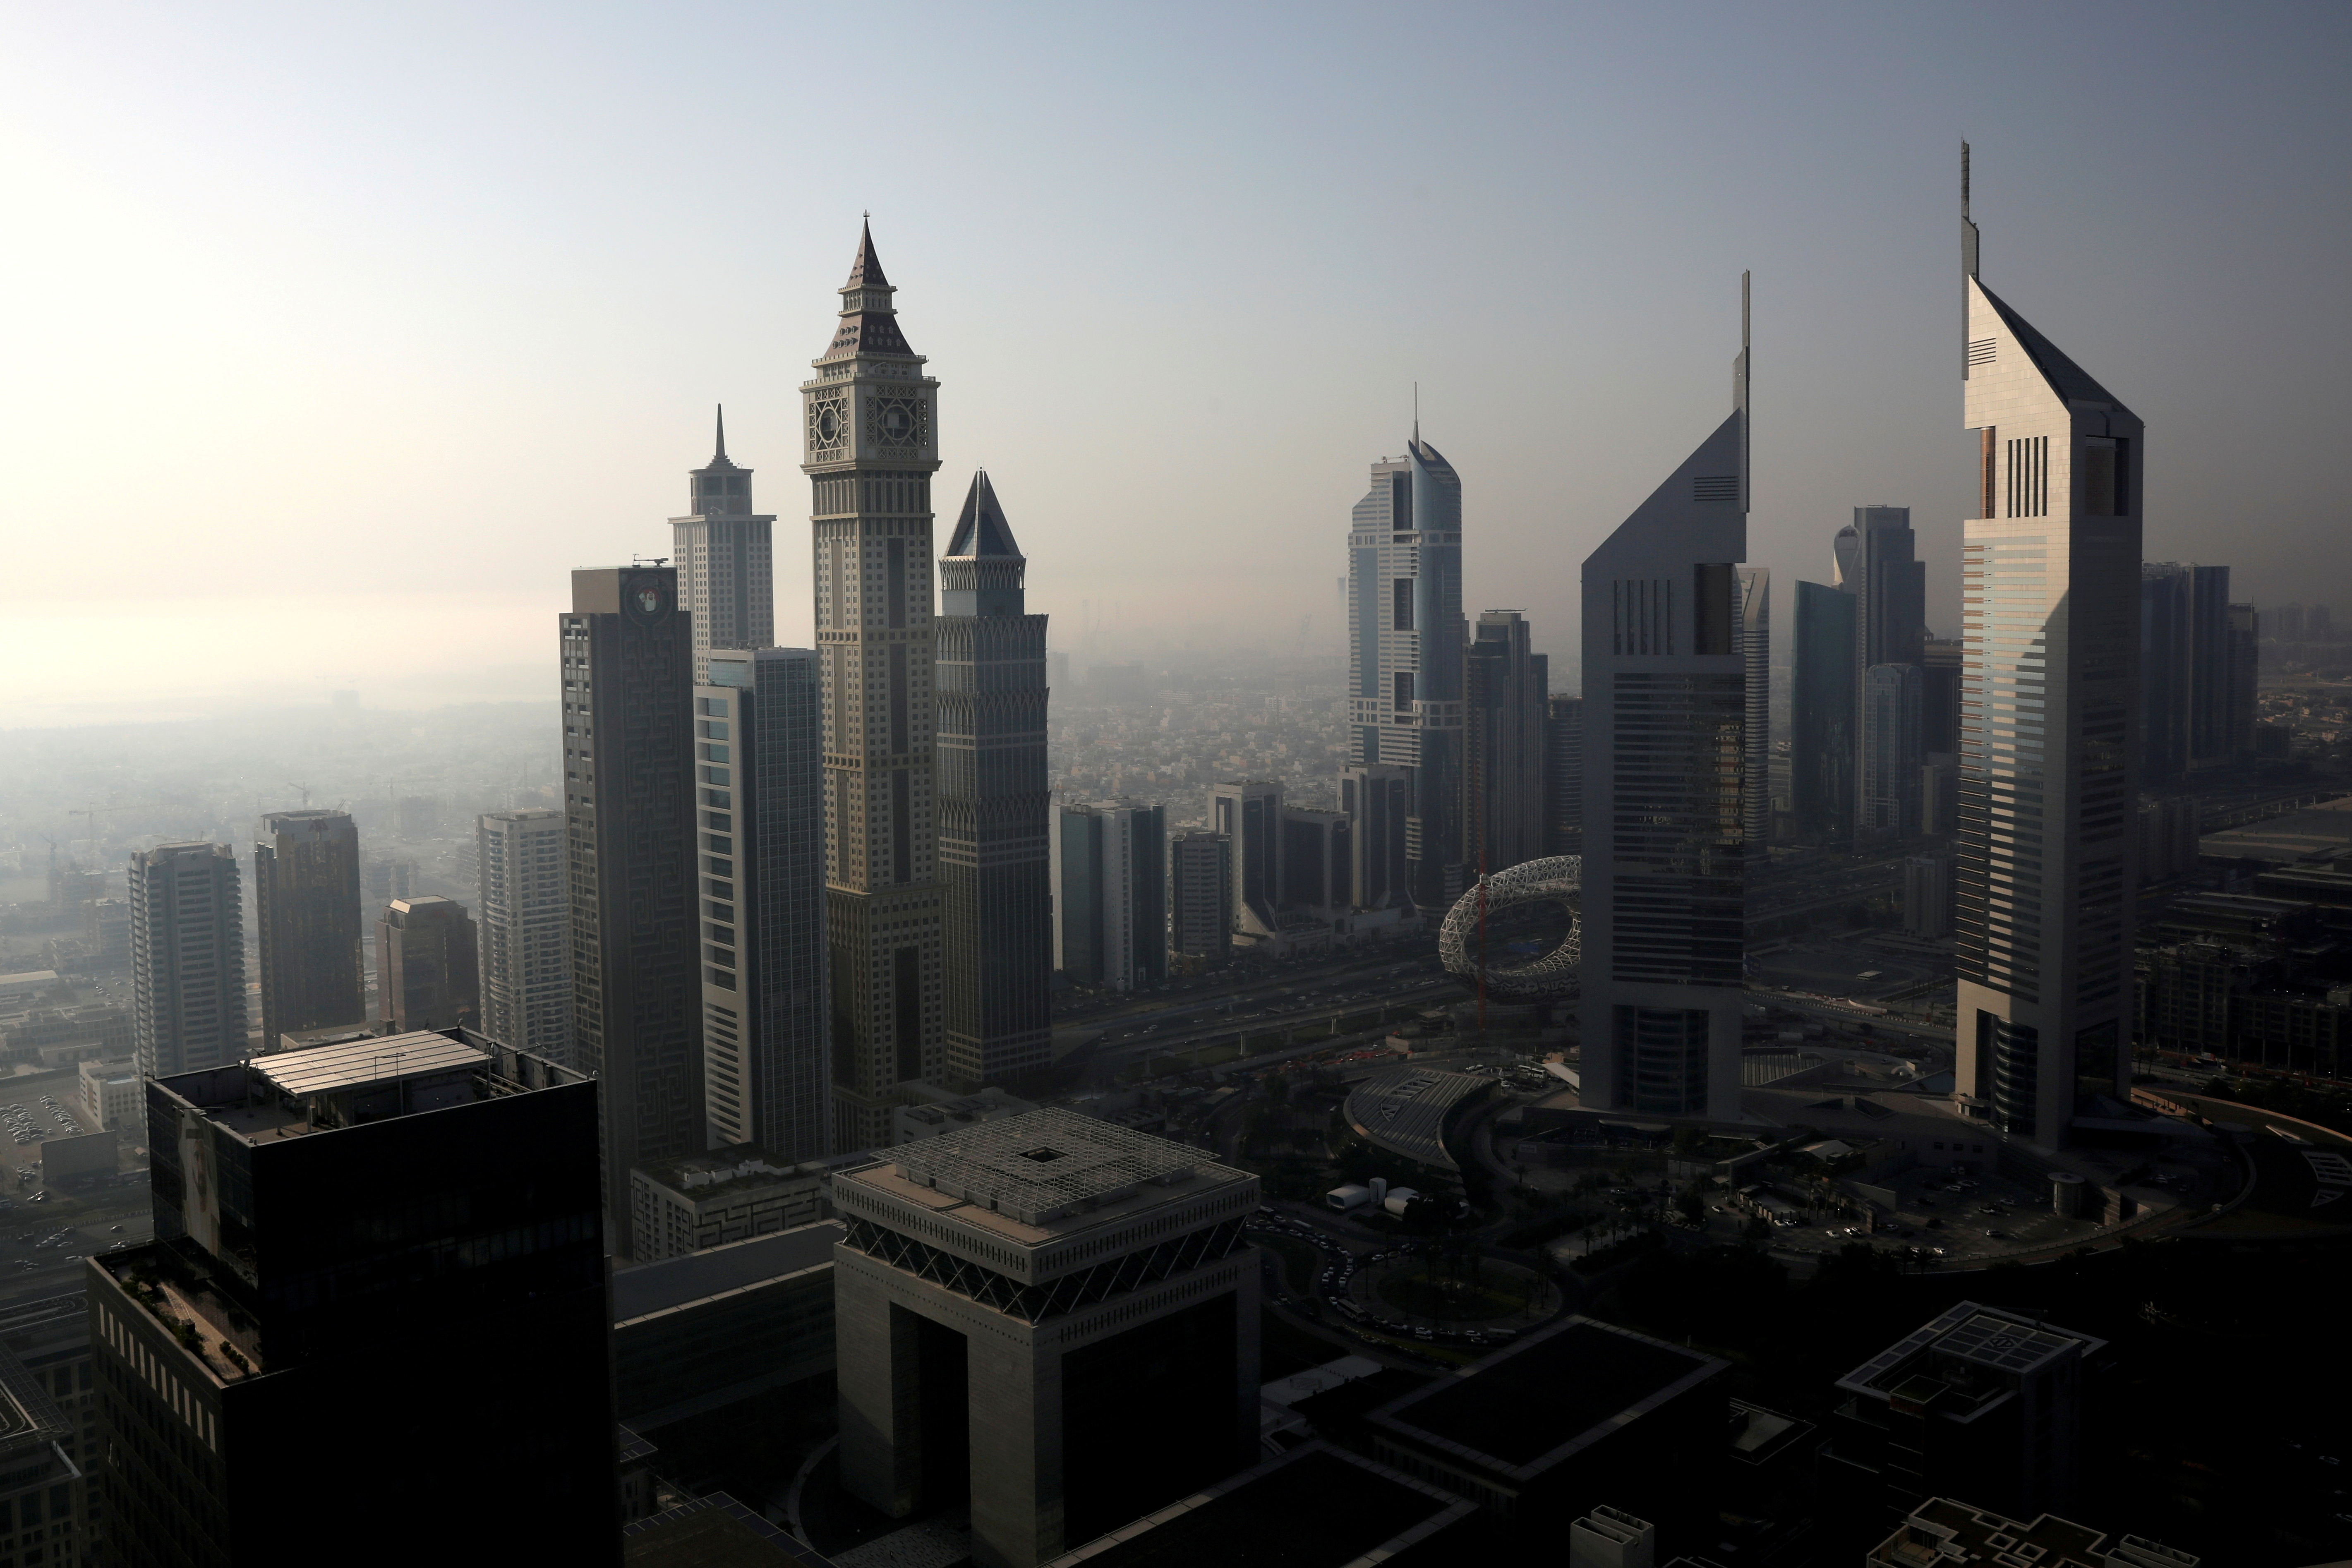 A general view of Dubai International Financial Centre (DIFC) among high-rise towers in Dubai, United Arab Emirates June 18, 2019. REUTERS/Christopher Pike